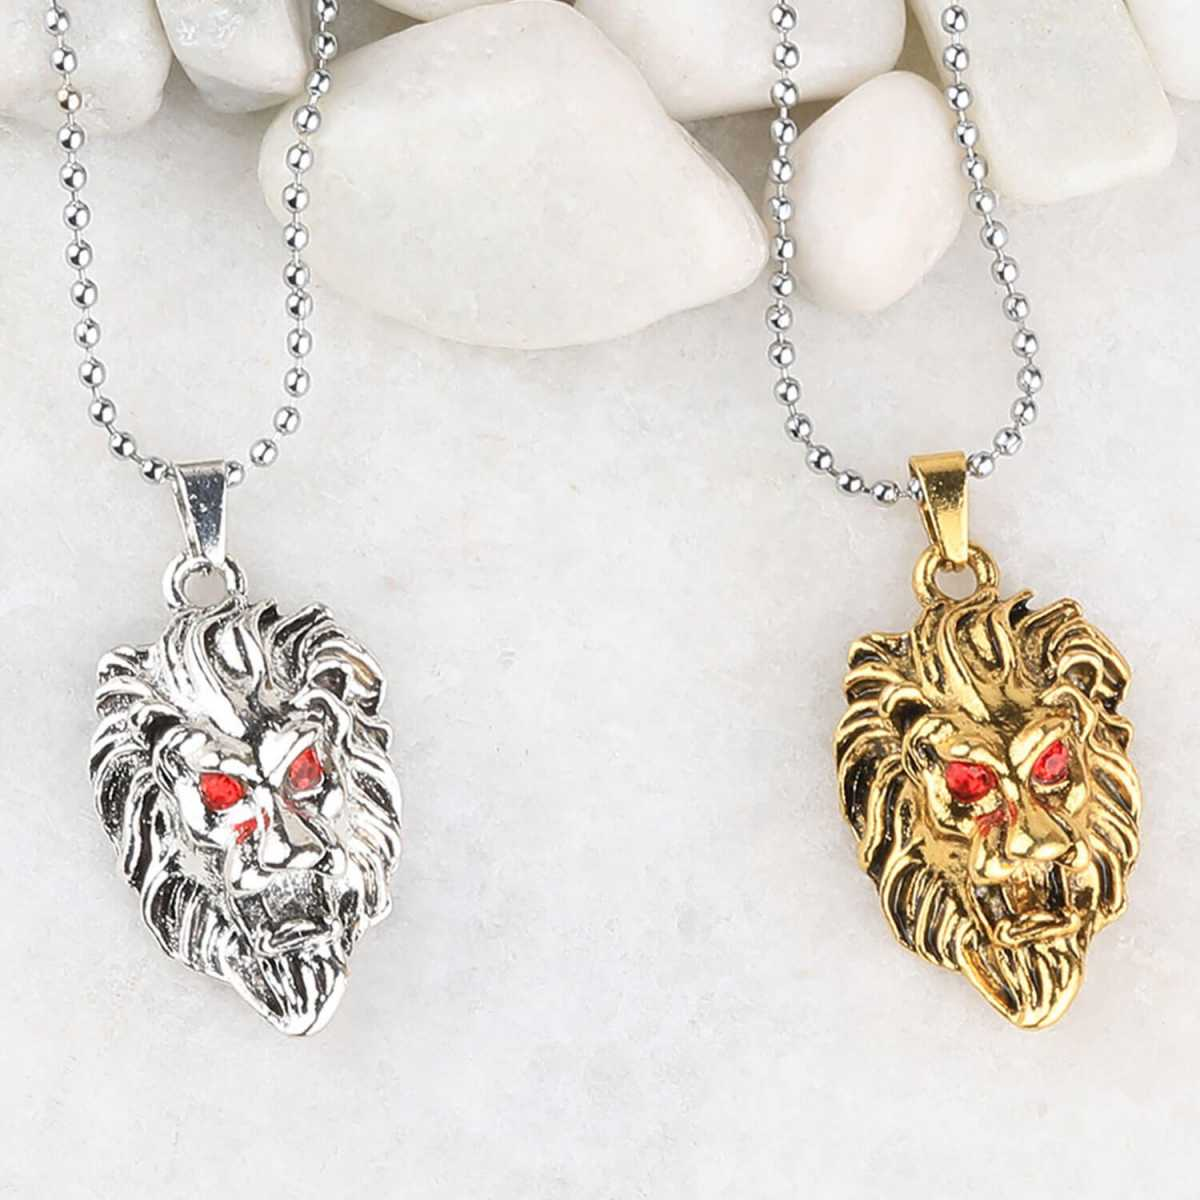 SILVERSHINE Silver Plated Stylist Chain With Lion Design Combo Chain pendant For Man Boys-2piece